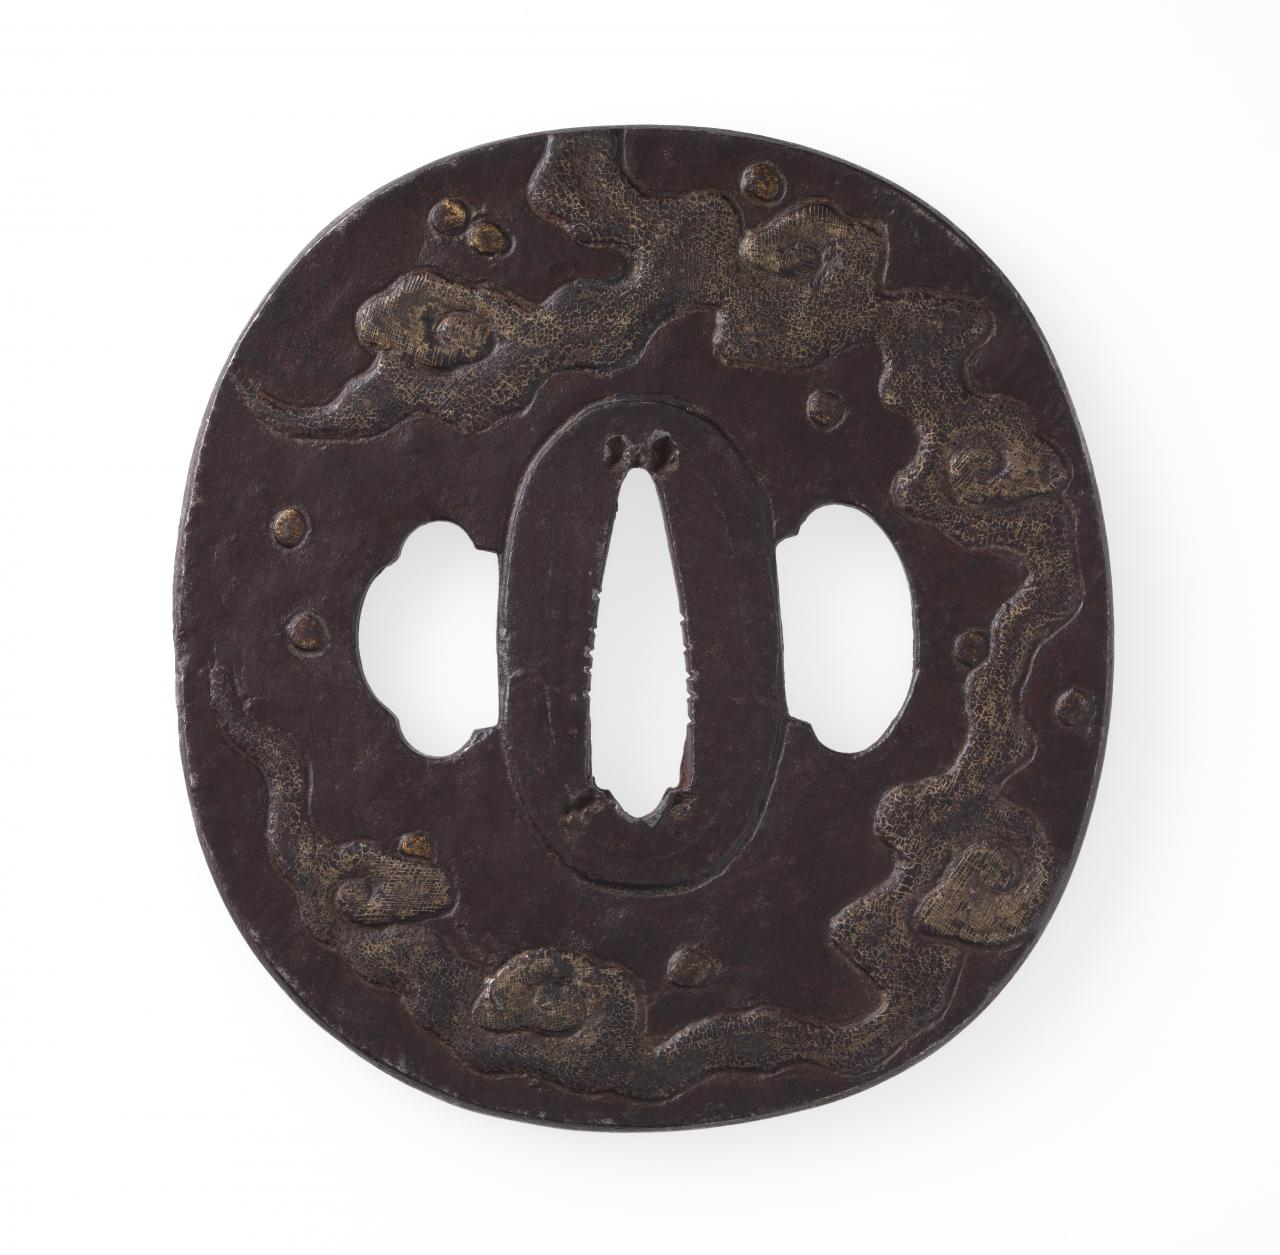 Sword guard with splashing water and dragon cloud design